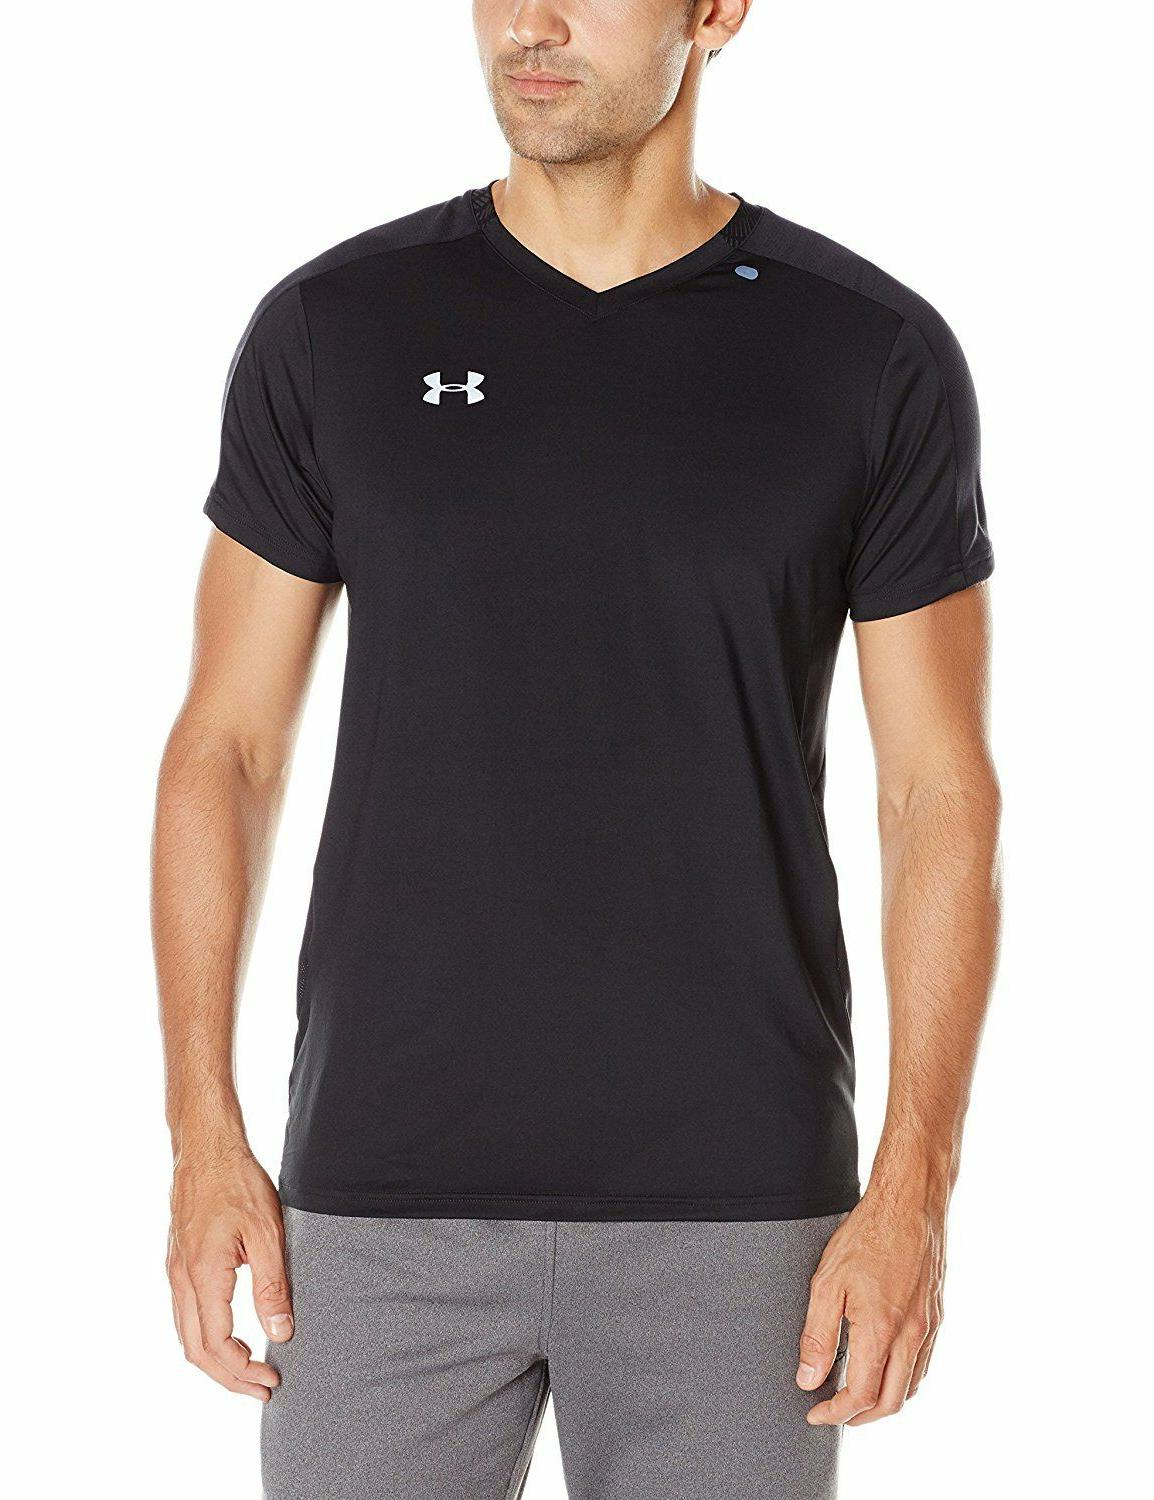 NWT Under Armour CoolSwitch Run V Neck T shirt Fitted Black